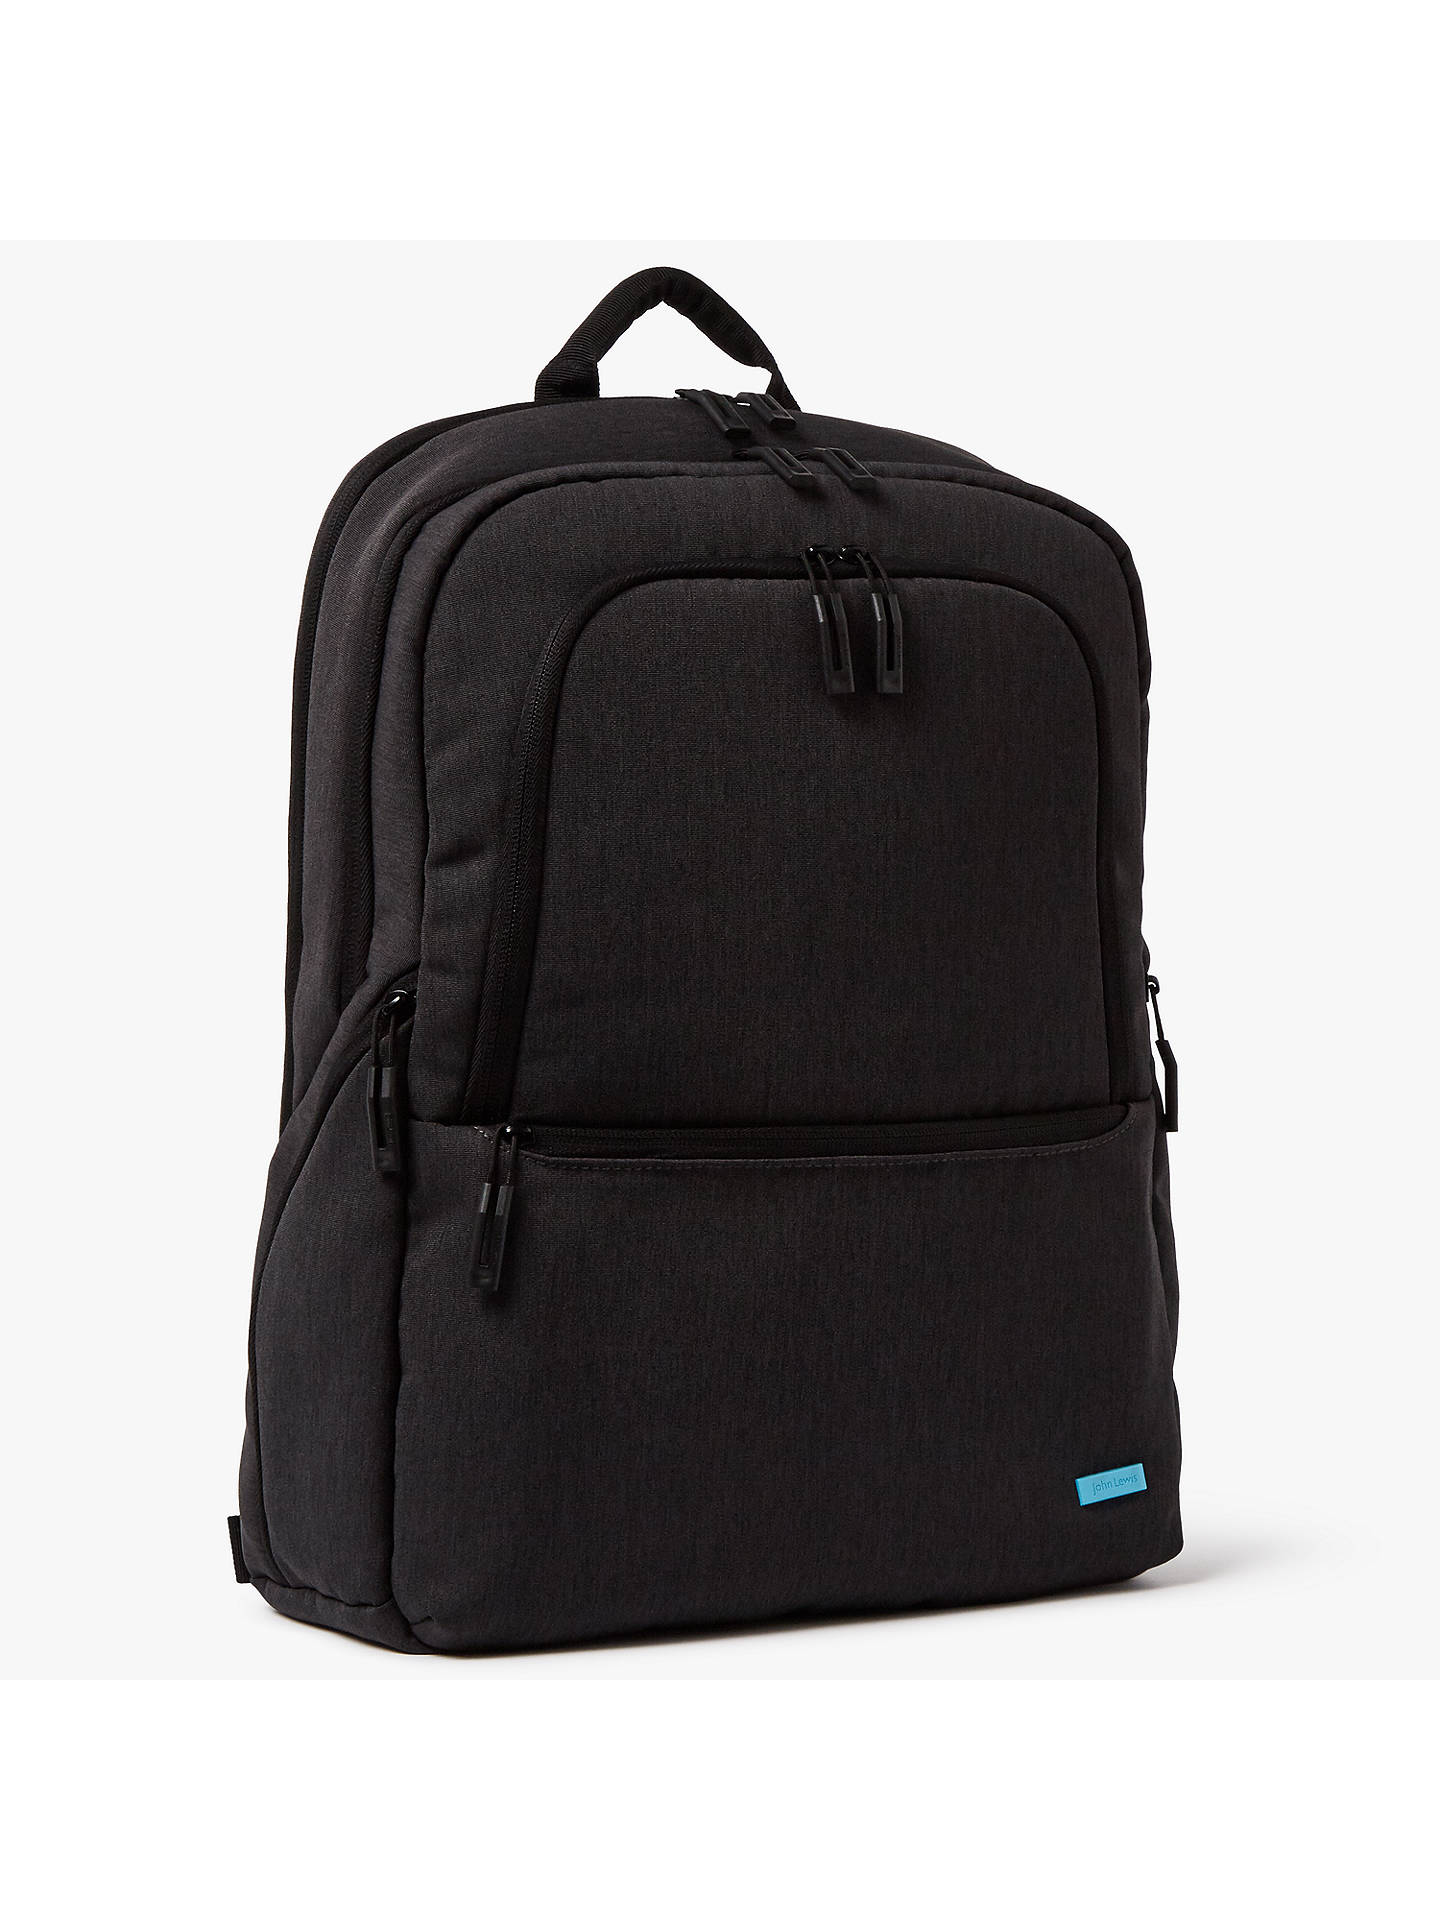 BuyJohn Lewis & Partners Commute II 17-Inch Laptop Backpack, Graphite Online at johnlewis.com